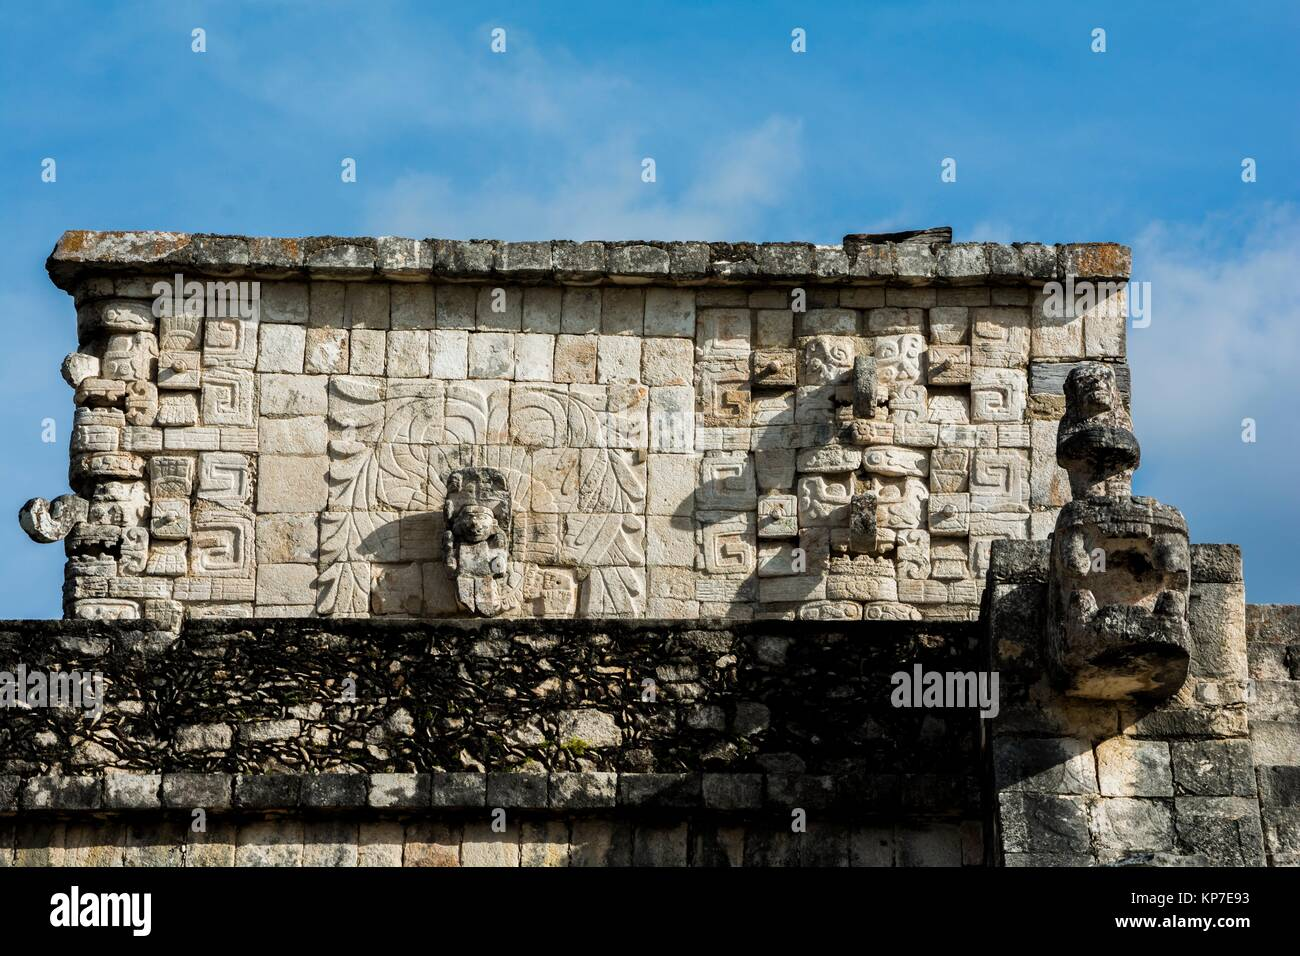 Sculptures and carved reliefs decorating the Temple of the Warriors (Templo de los Guerreros), Chichen Itza, Mayan Stock Photo